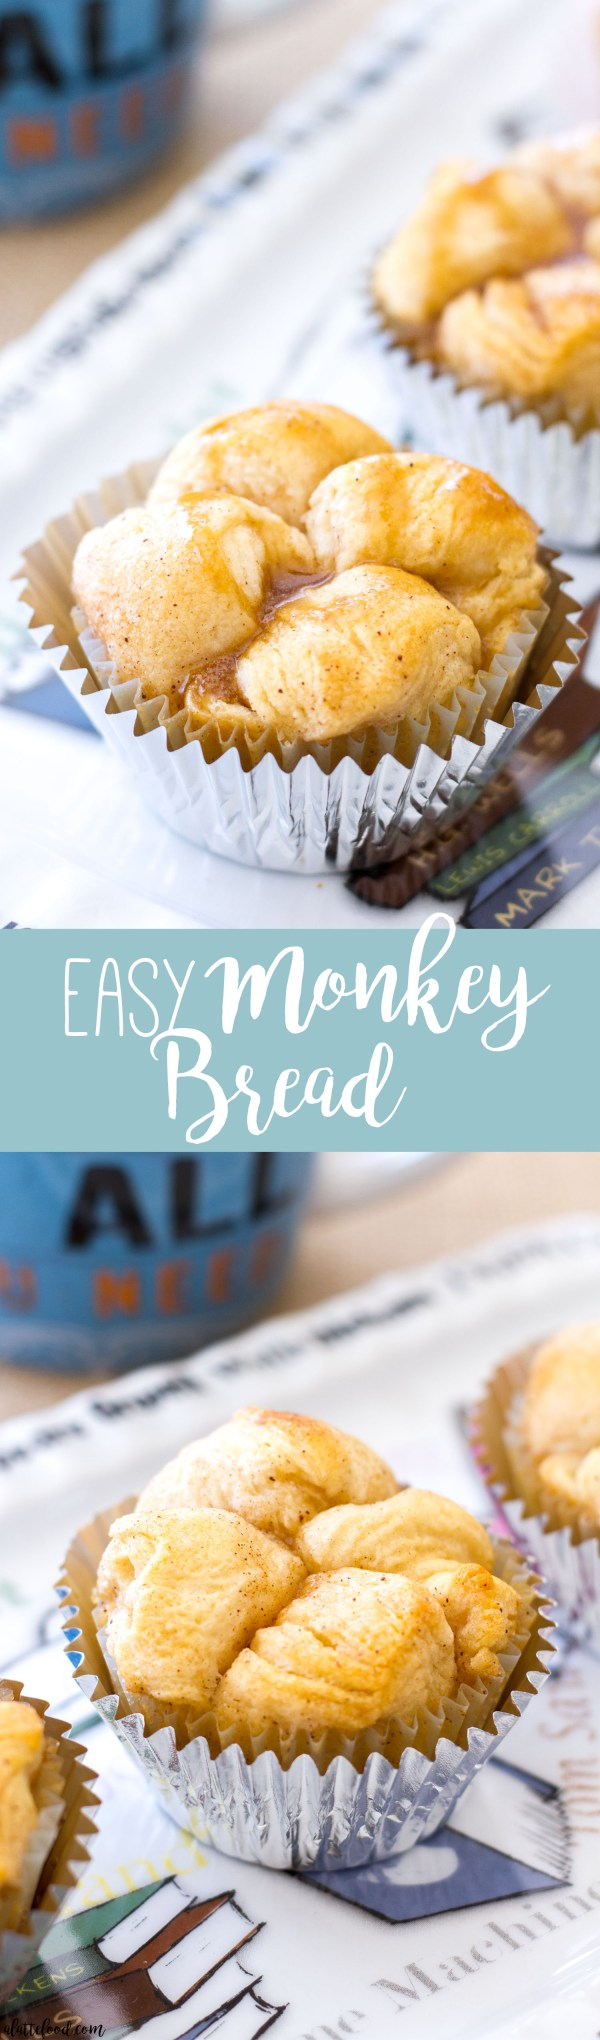 This easy homemade monkey bread is practically irresistible! Made with refrigerator biscuit dough, this easy monkey bread is rolled in cinnamon sugar and drenched in a gooey, homemade caramel sauce!